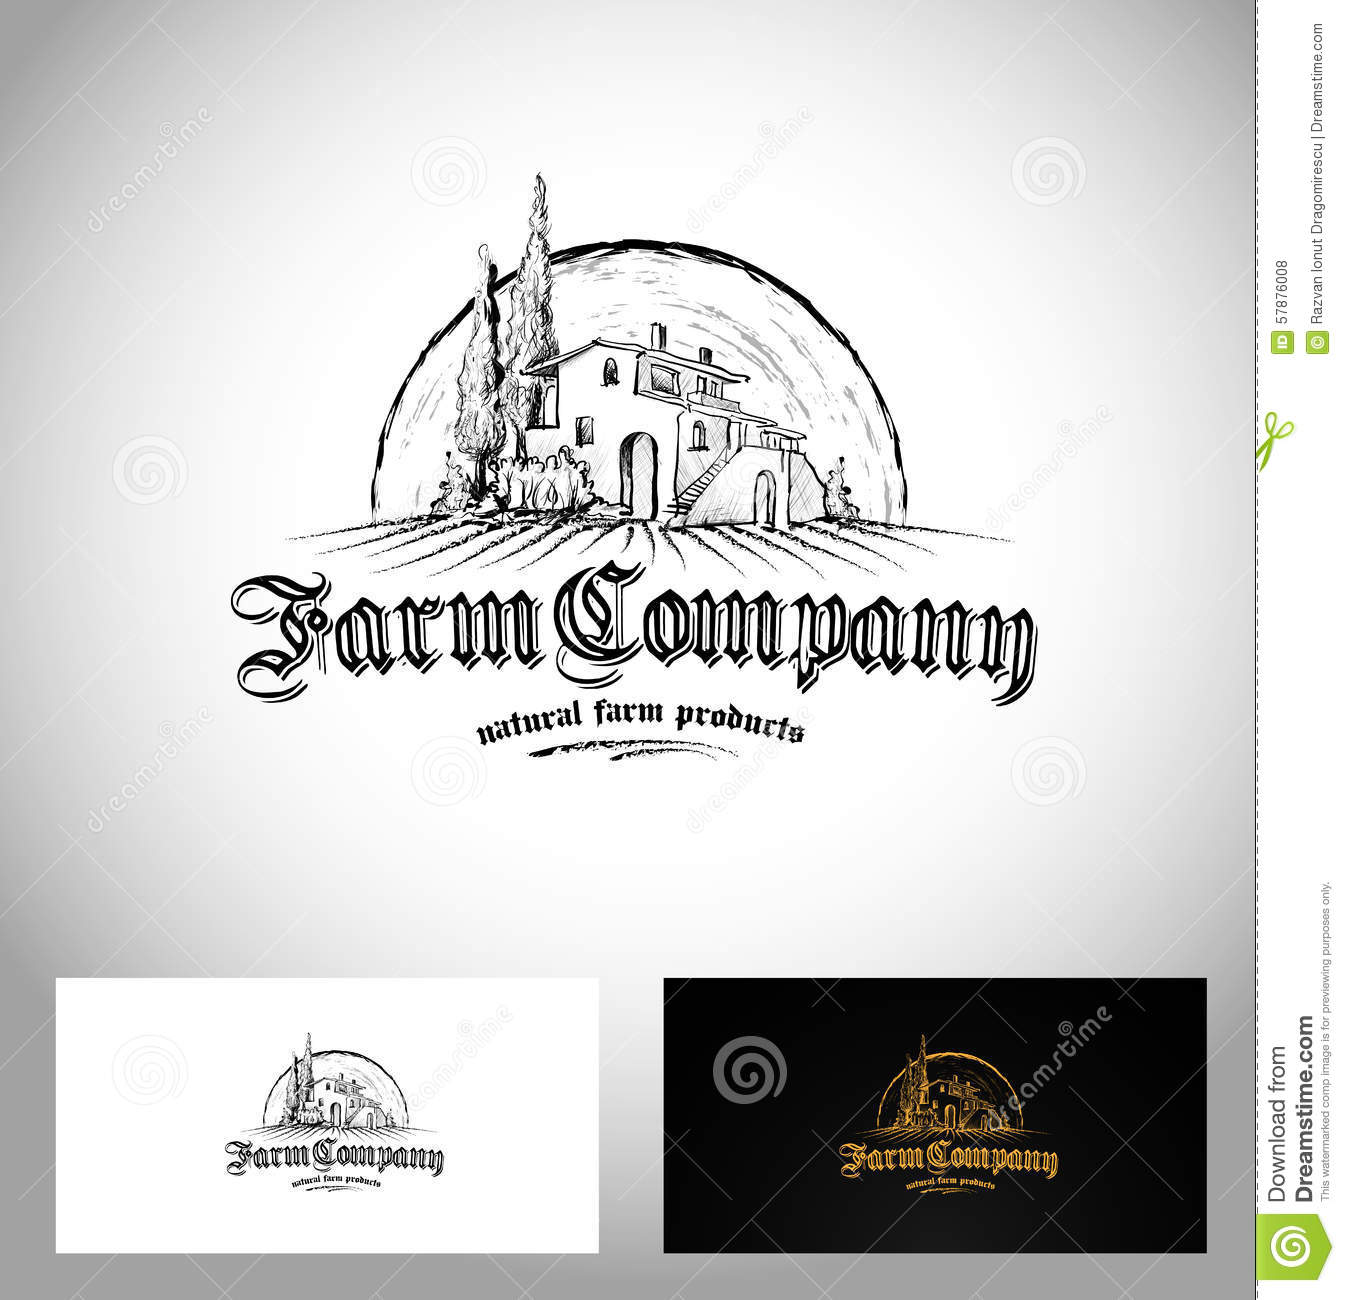 Farm Company Logo stock vector. Image of background, business ...